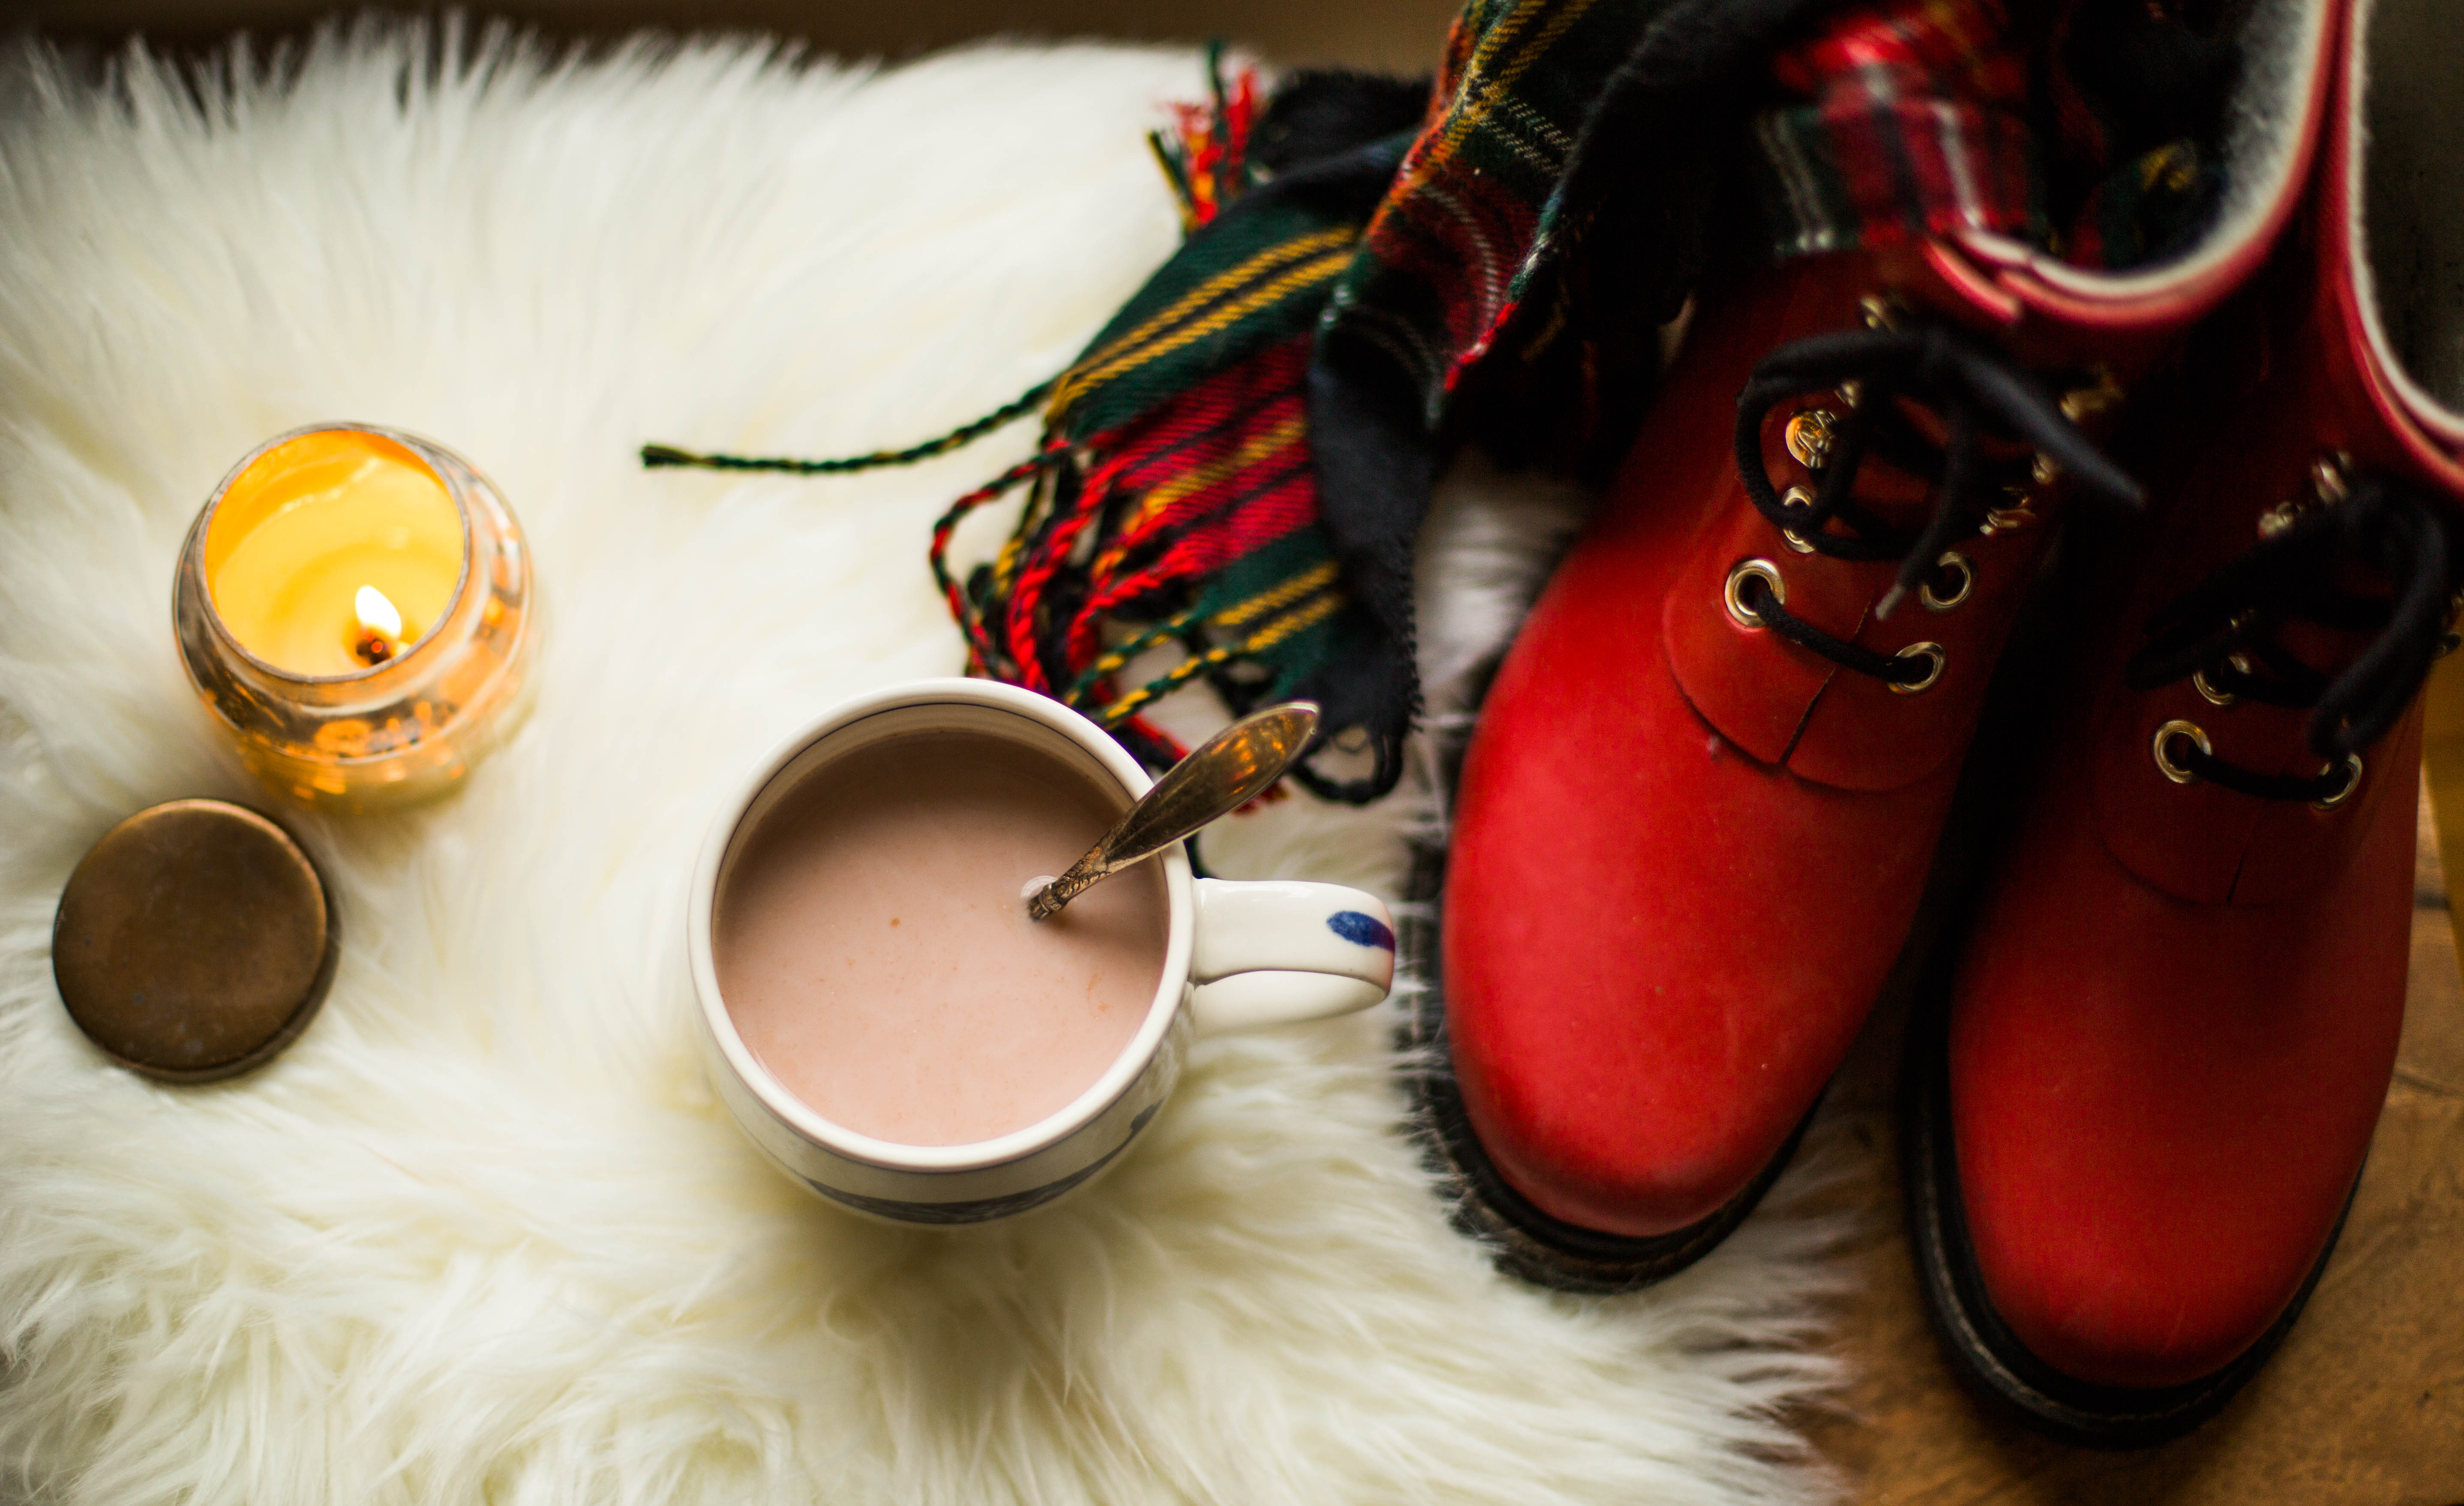 snow days and preparing for them- red boots, my favorite narwhal mug, a cozy rug and cookies